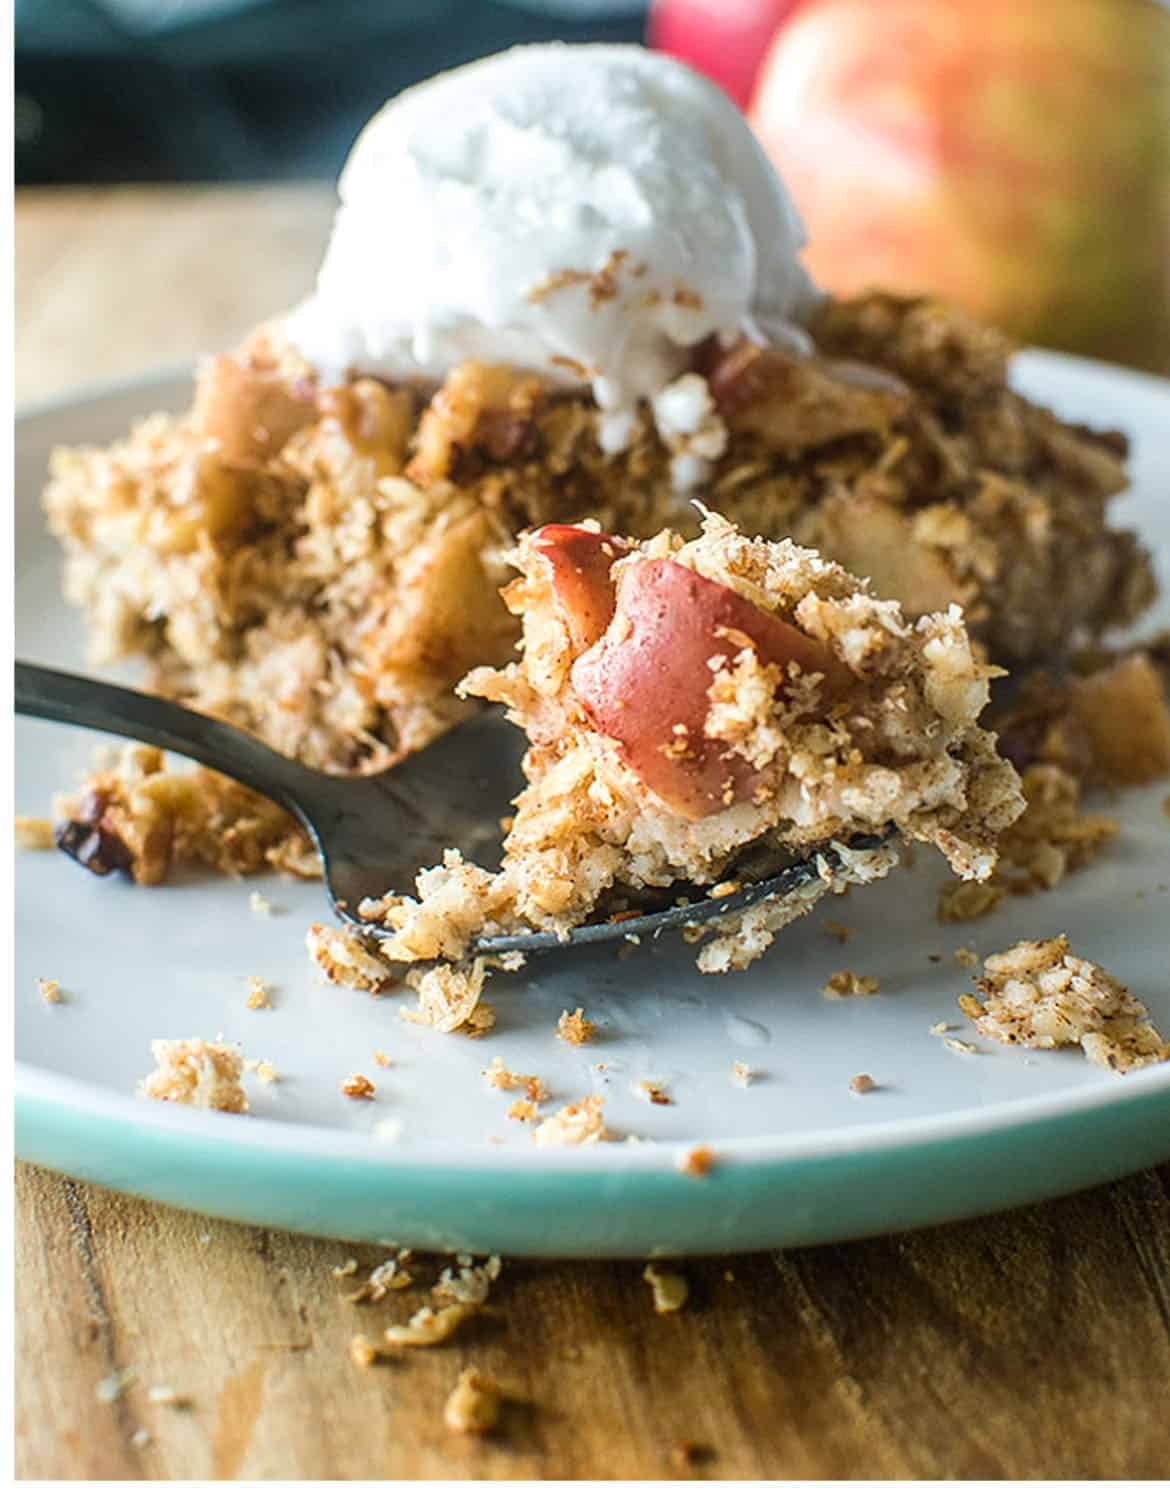 Apple crumble baked oats with ice cream on a turquoise plate - Tilly Eats